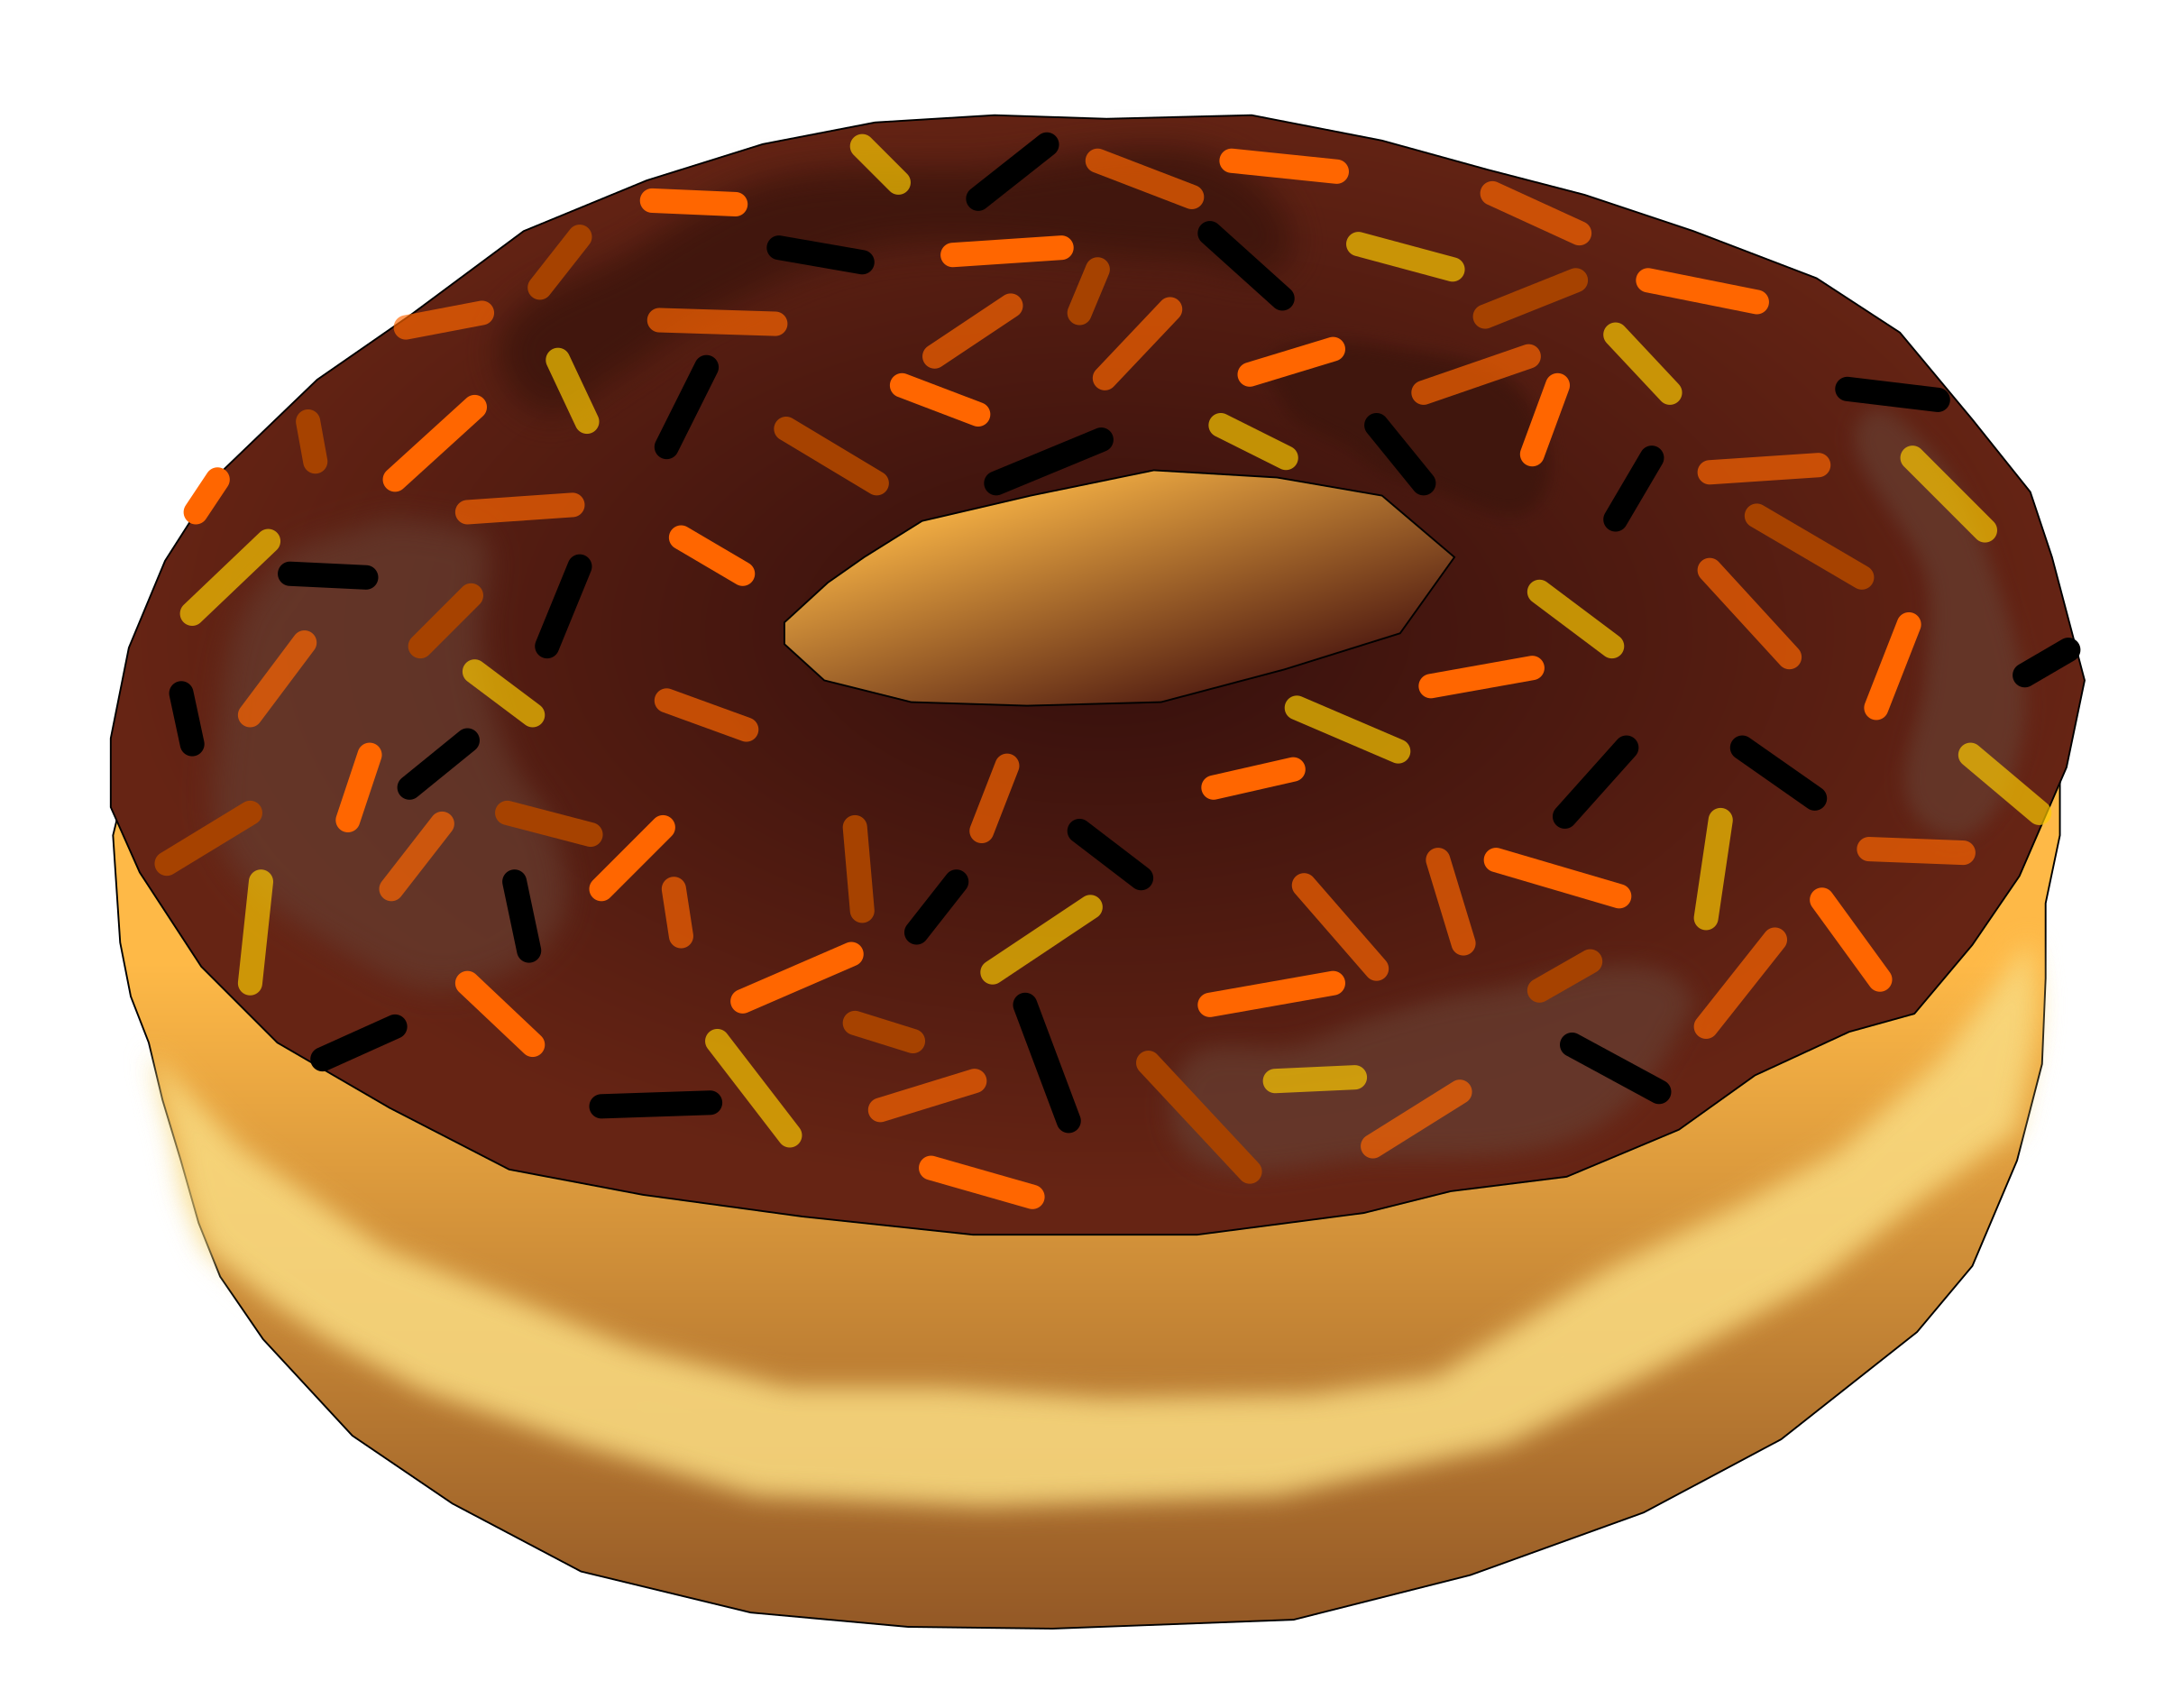 Big image png. Clipart halloween donut